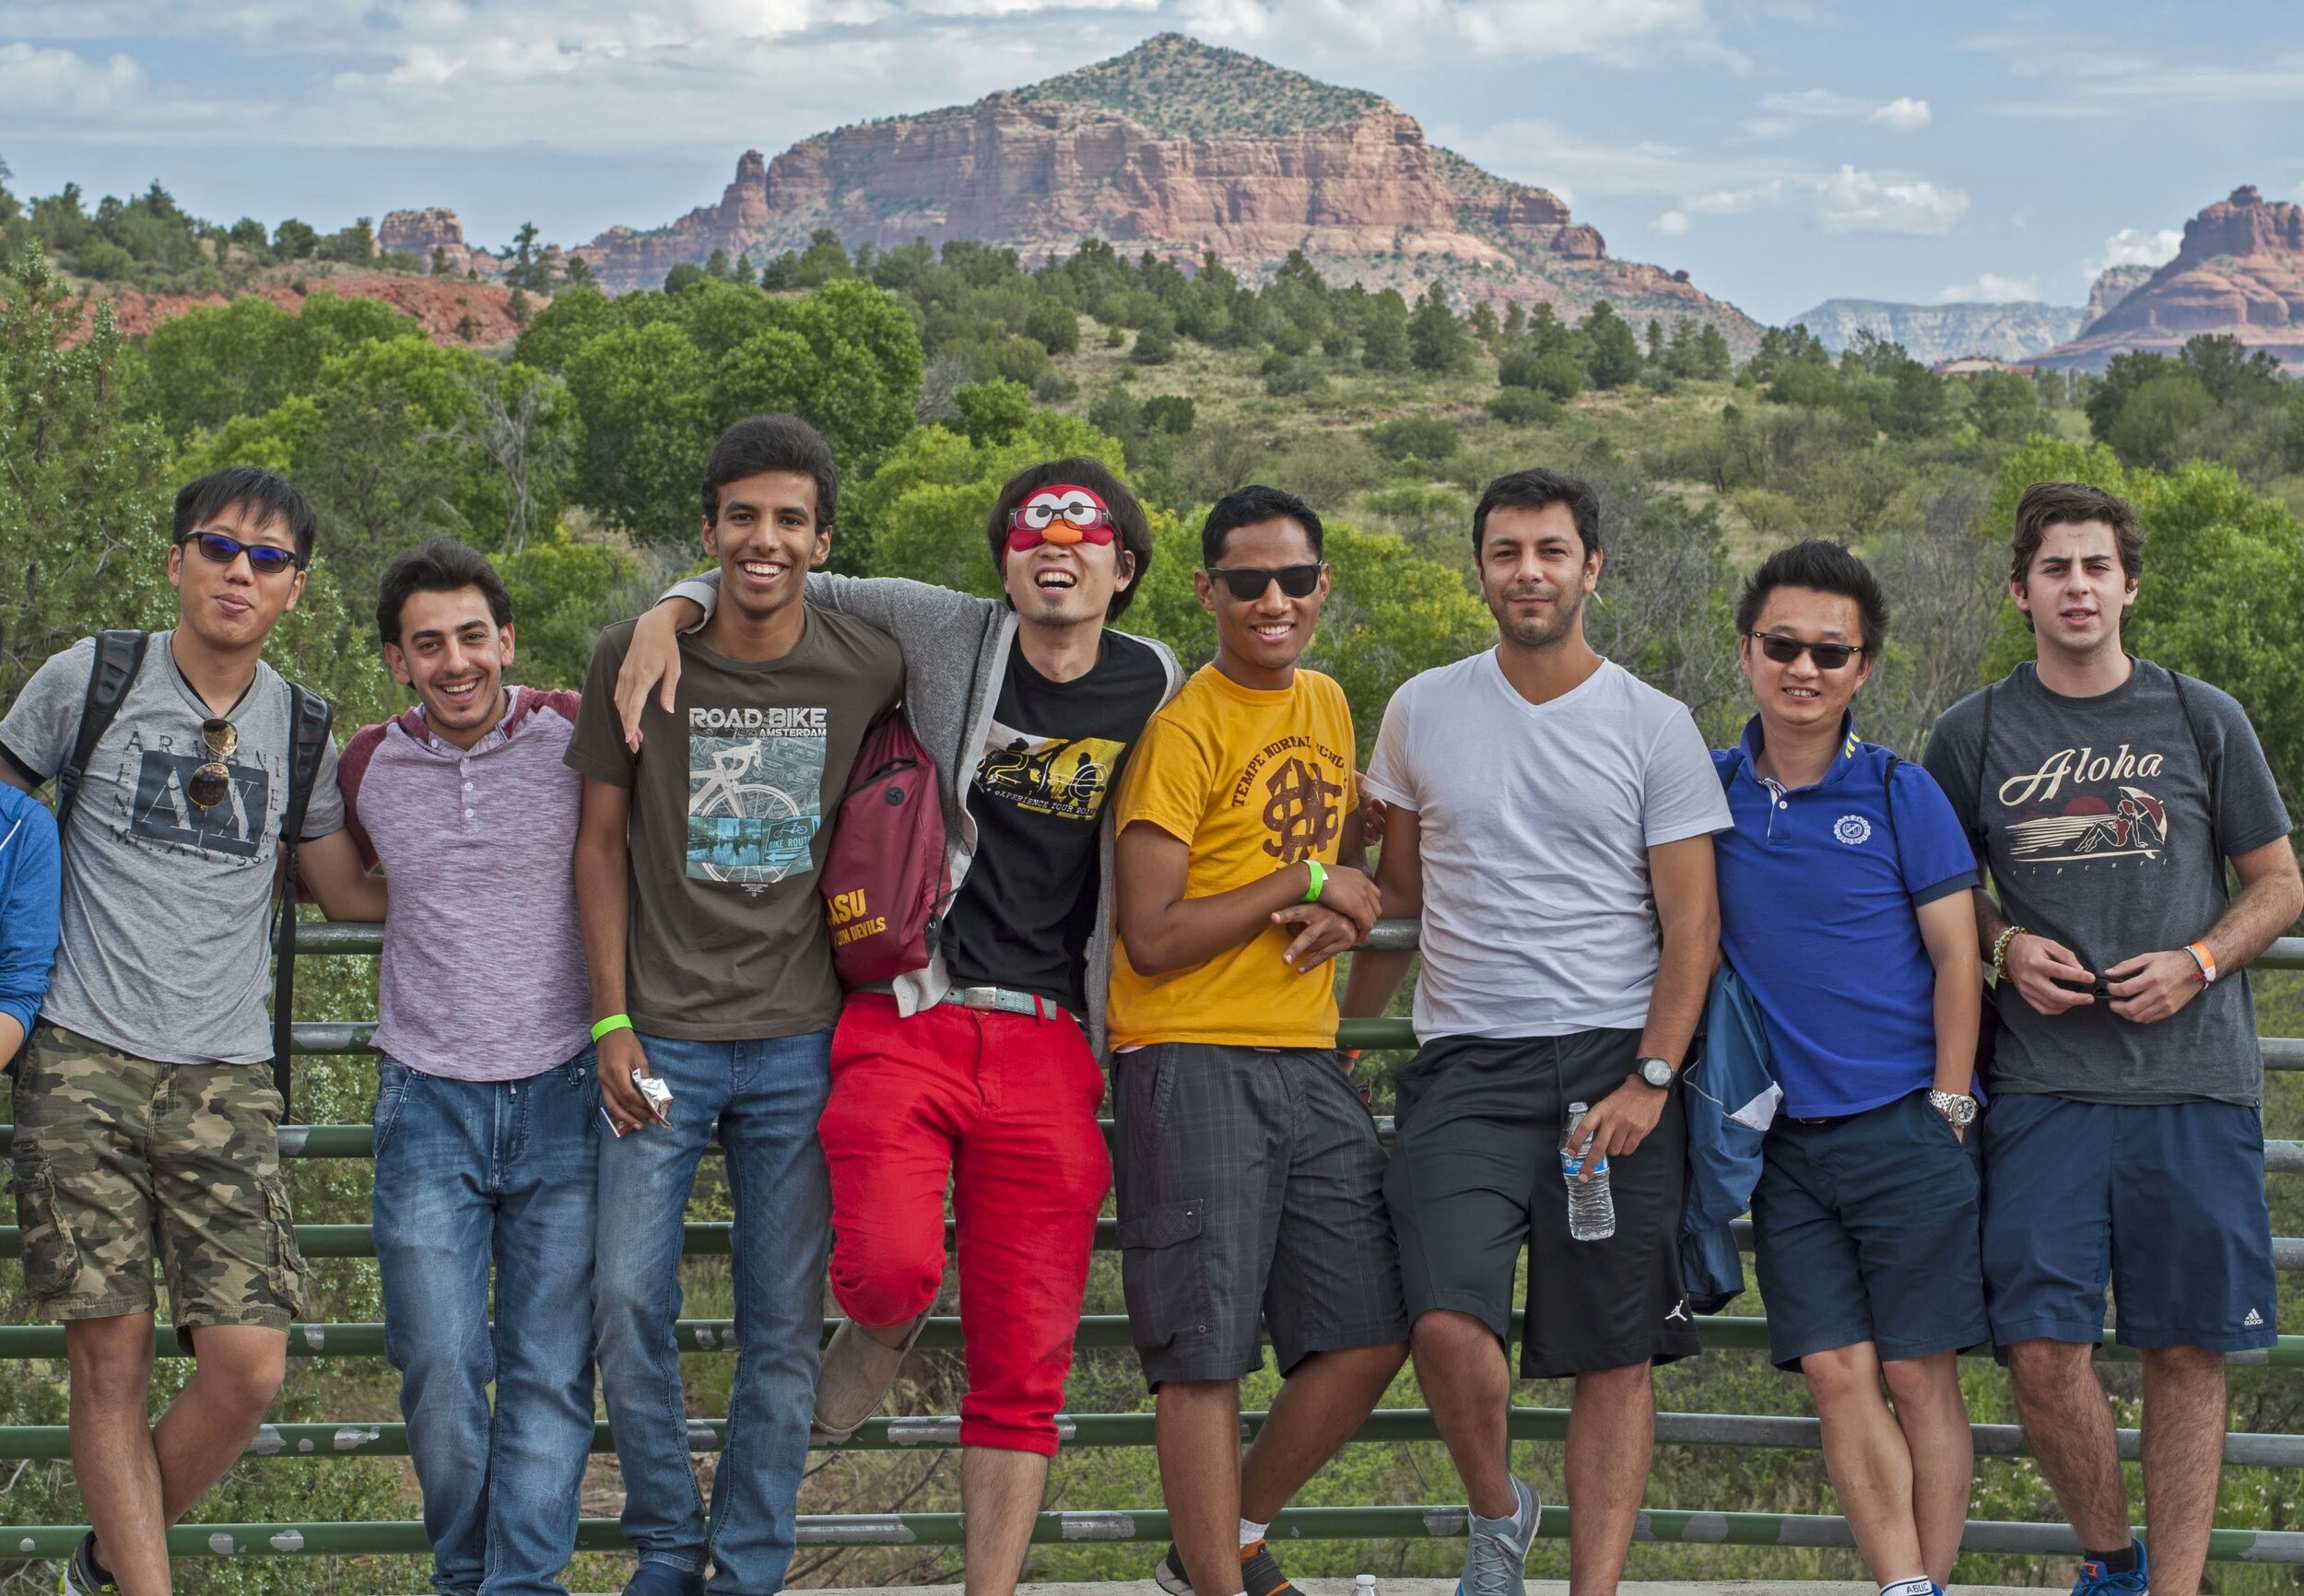 GUIDED SEDONA TOUR